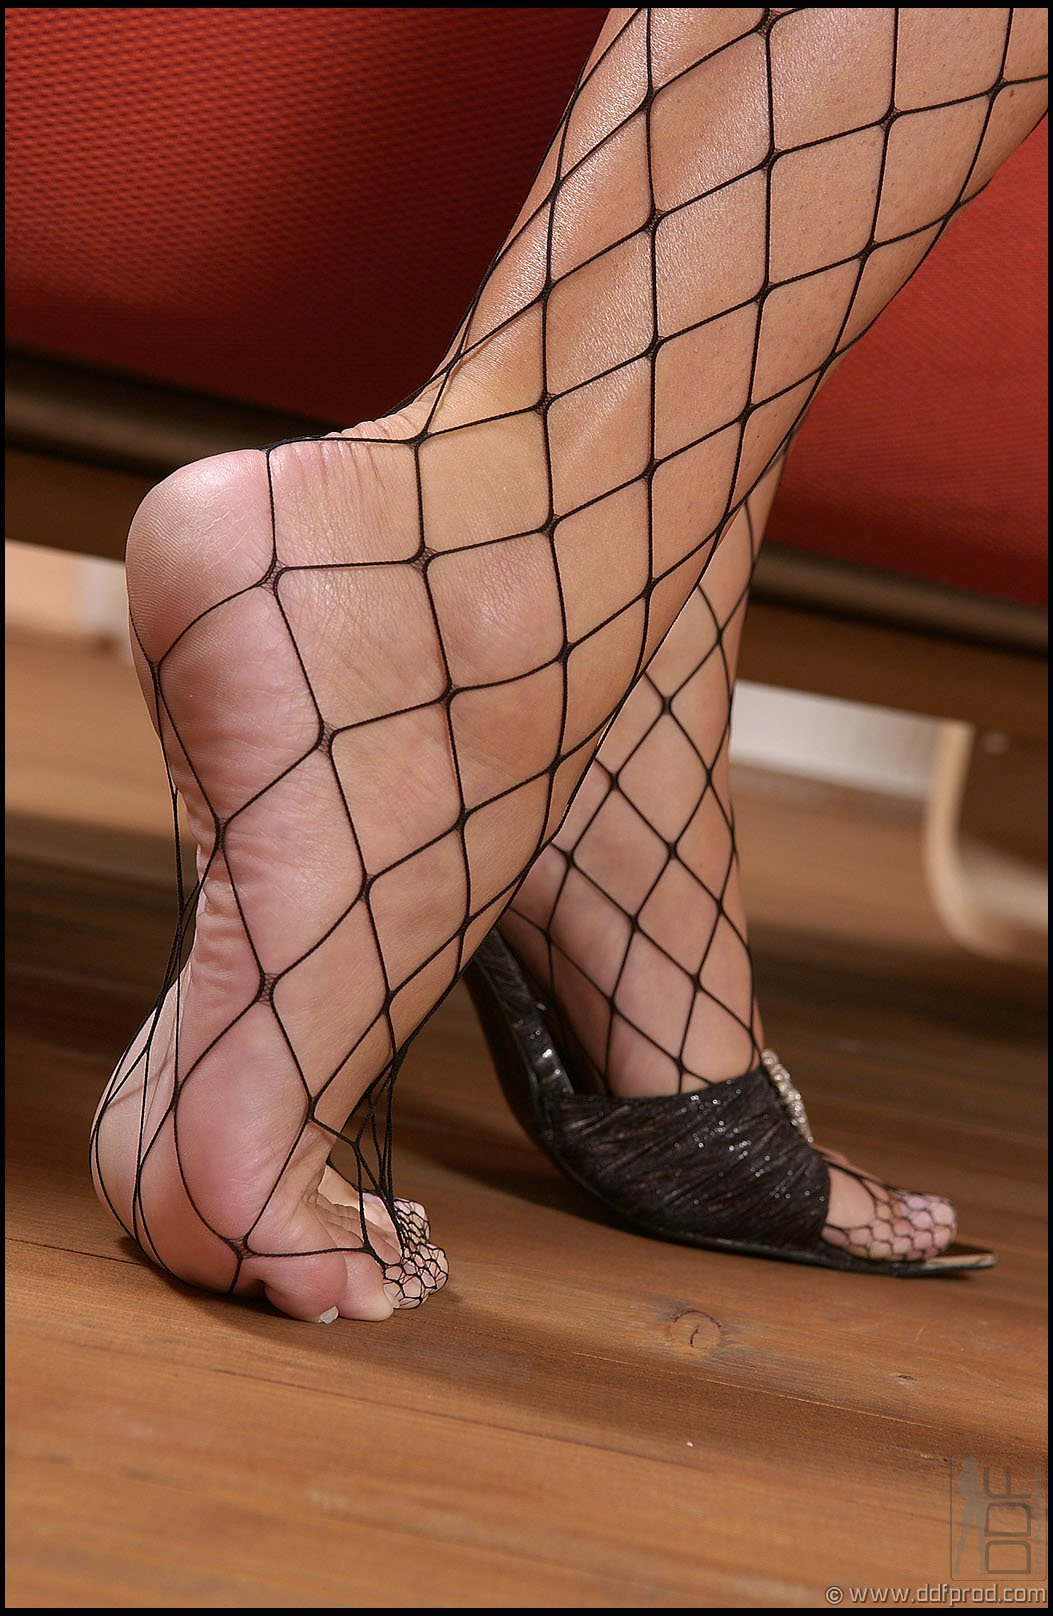 sandra shine in fishnet stockings sucking her toes porn